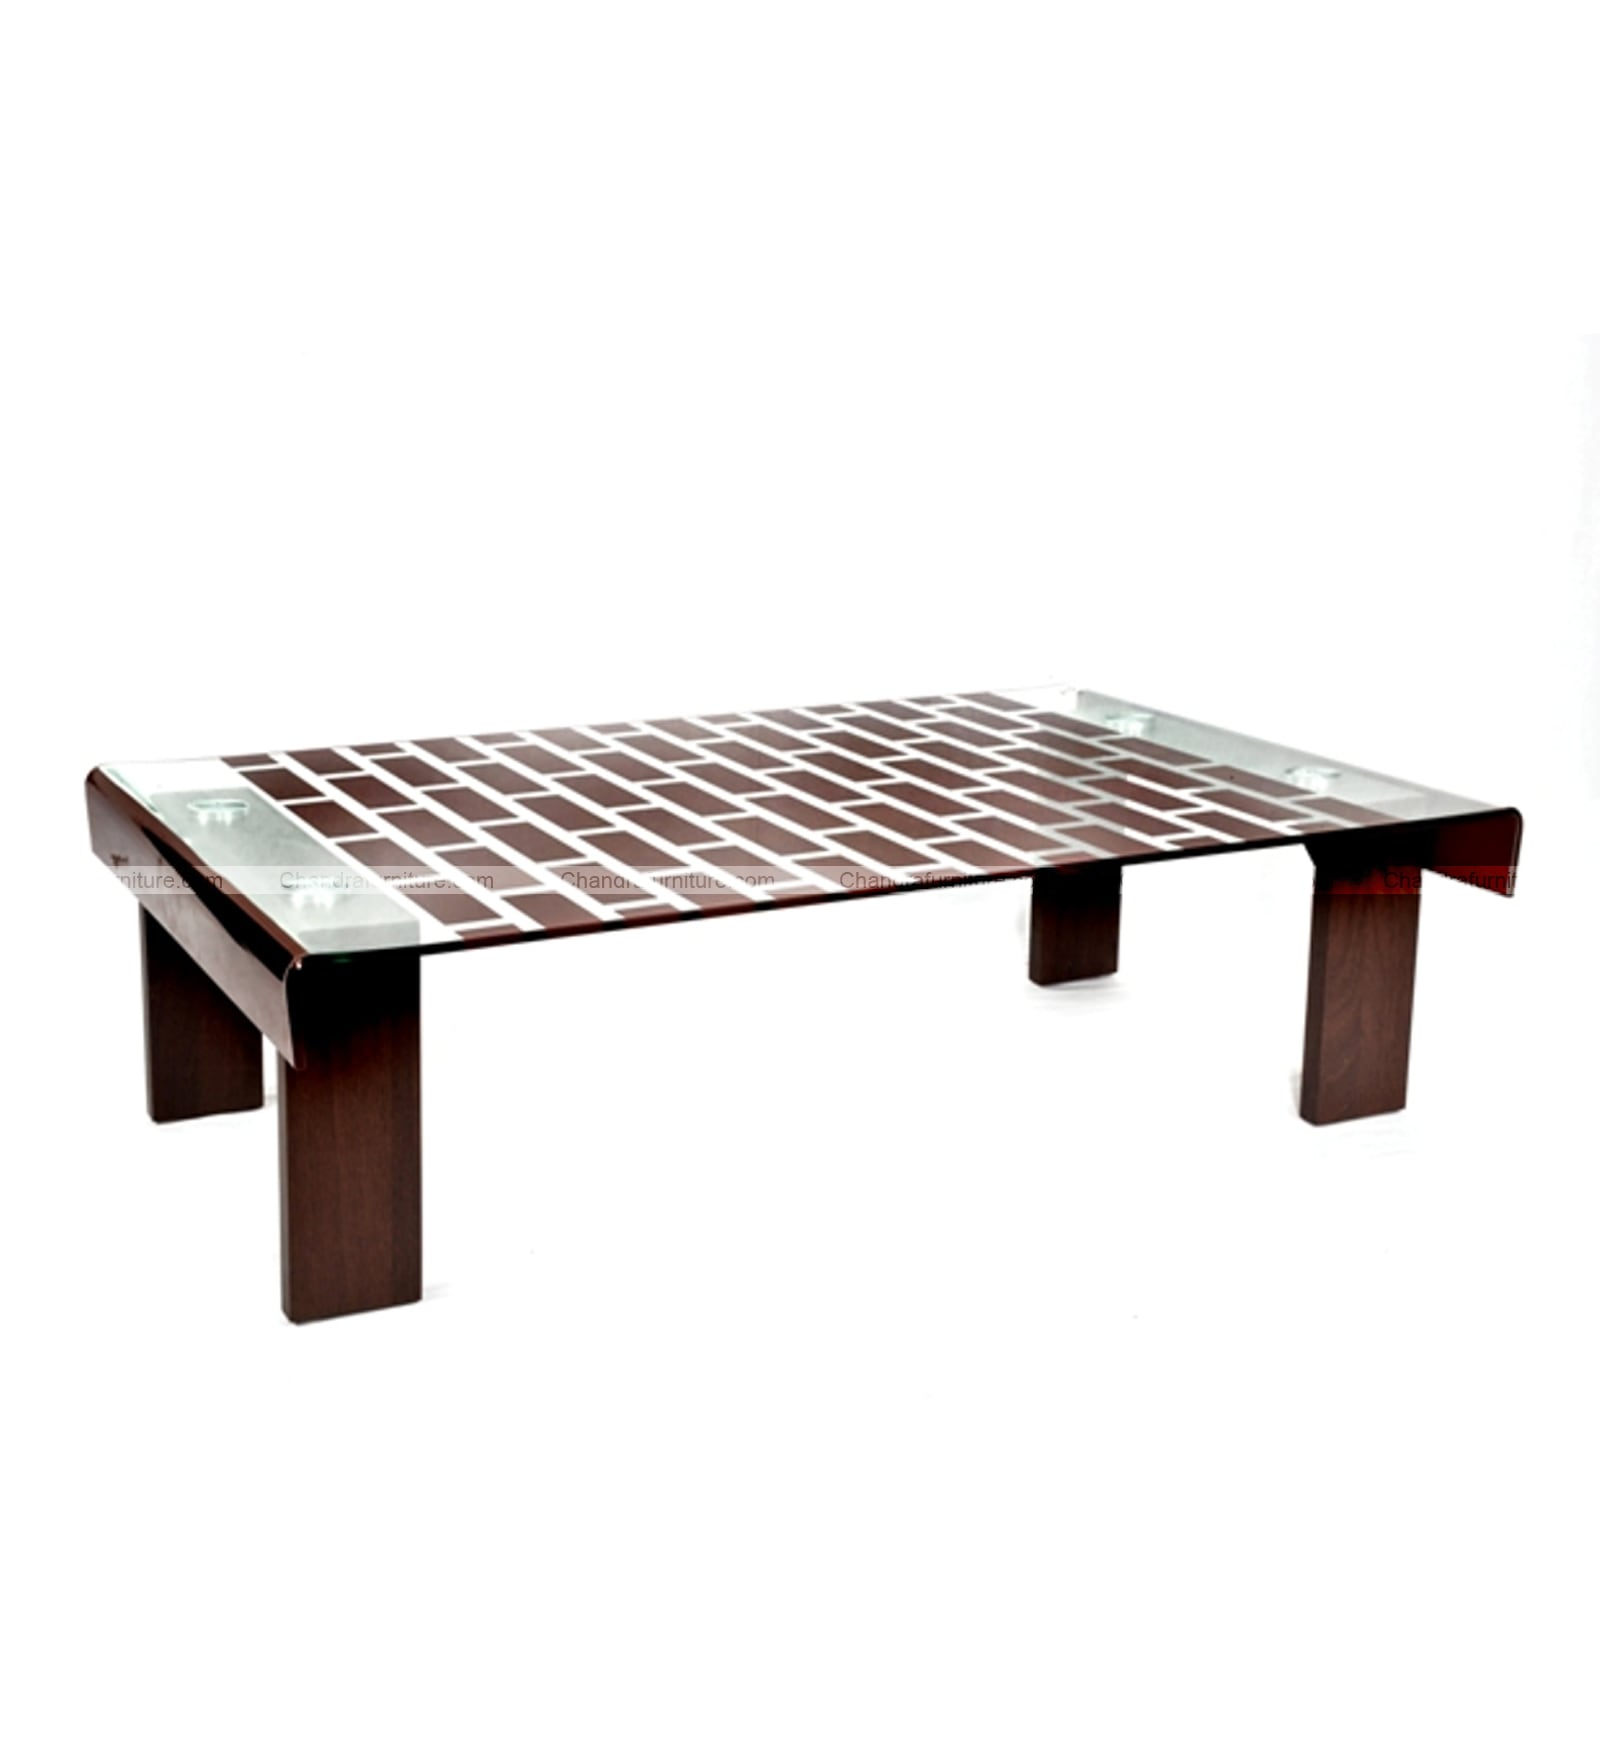 CHANDRA FURNITURE CENTER TABLE  A 14 SMALL